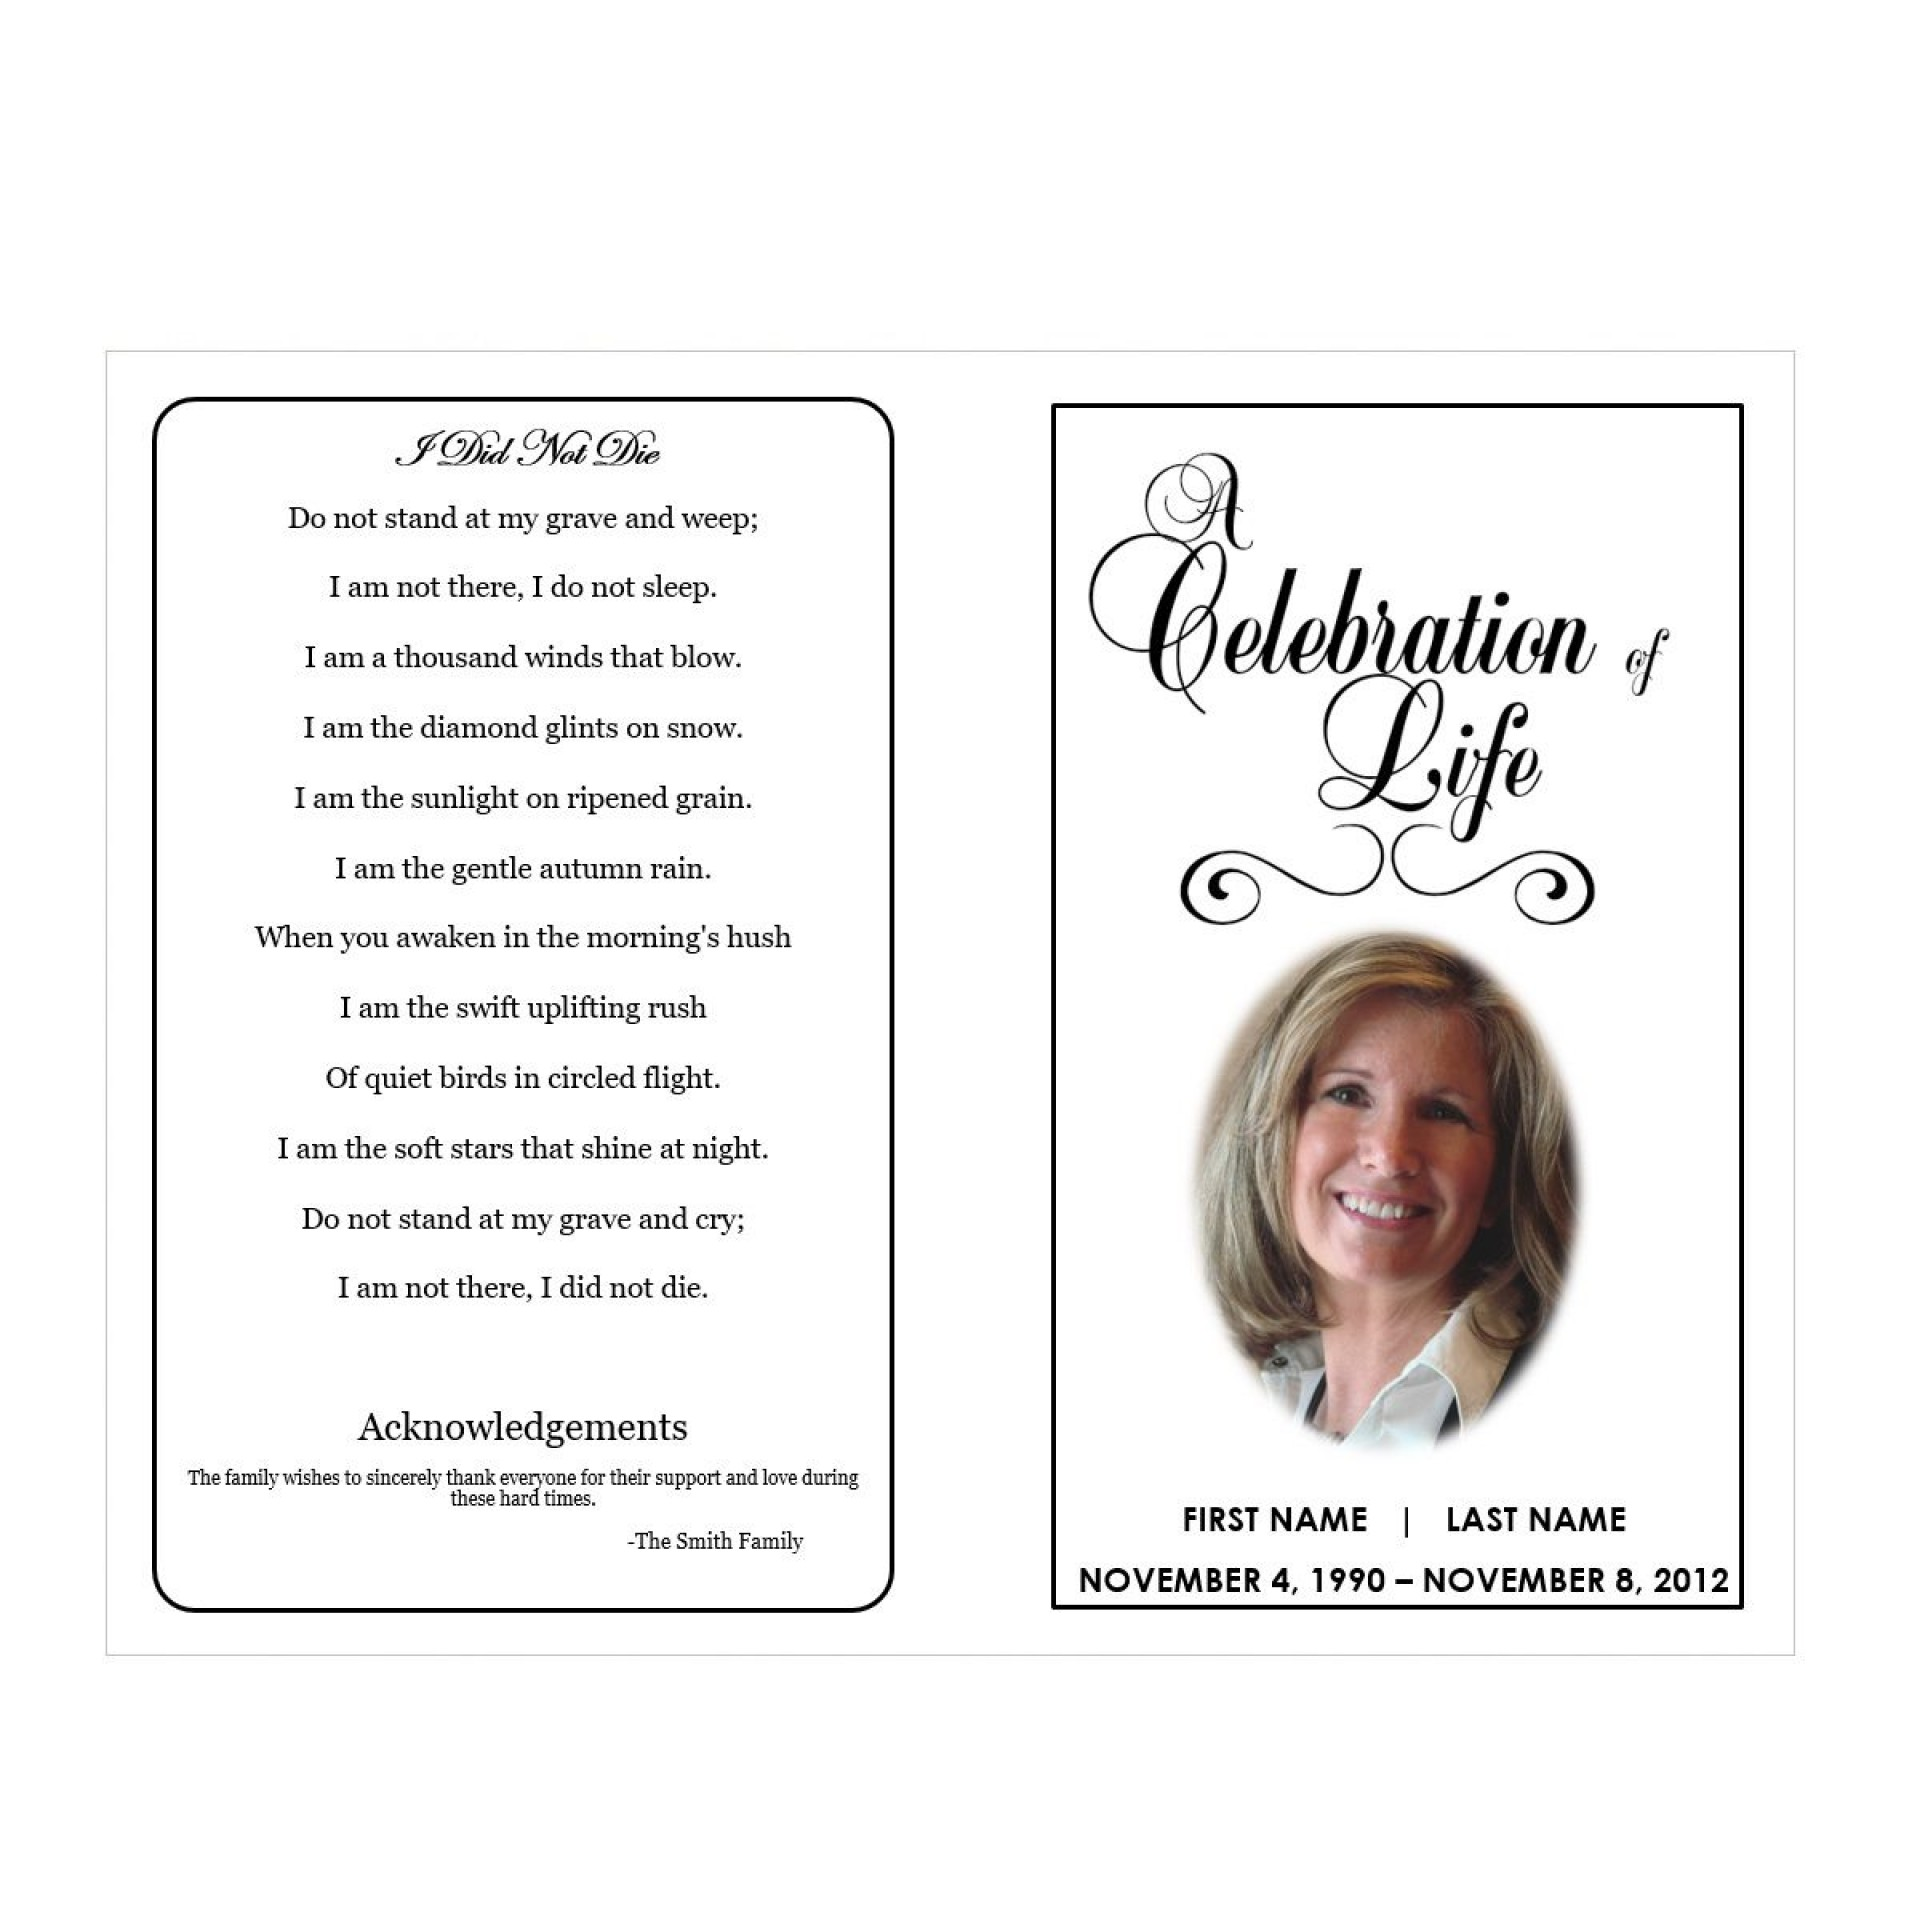 009 Unique Free Celebration Of Life Program Template Download Image 1920